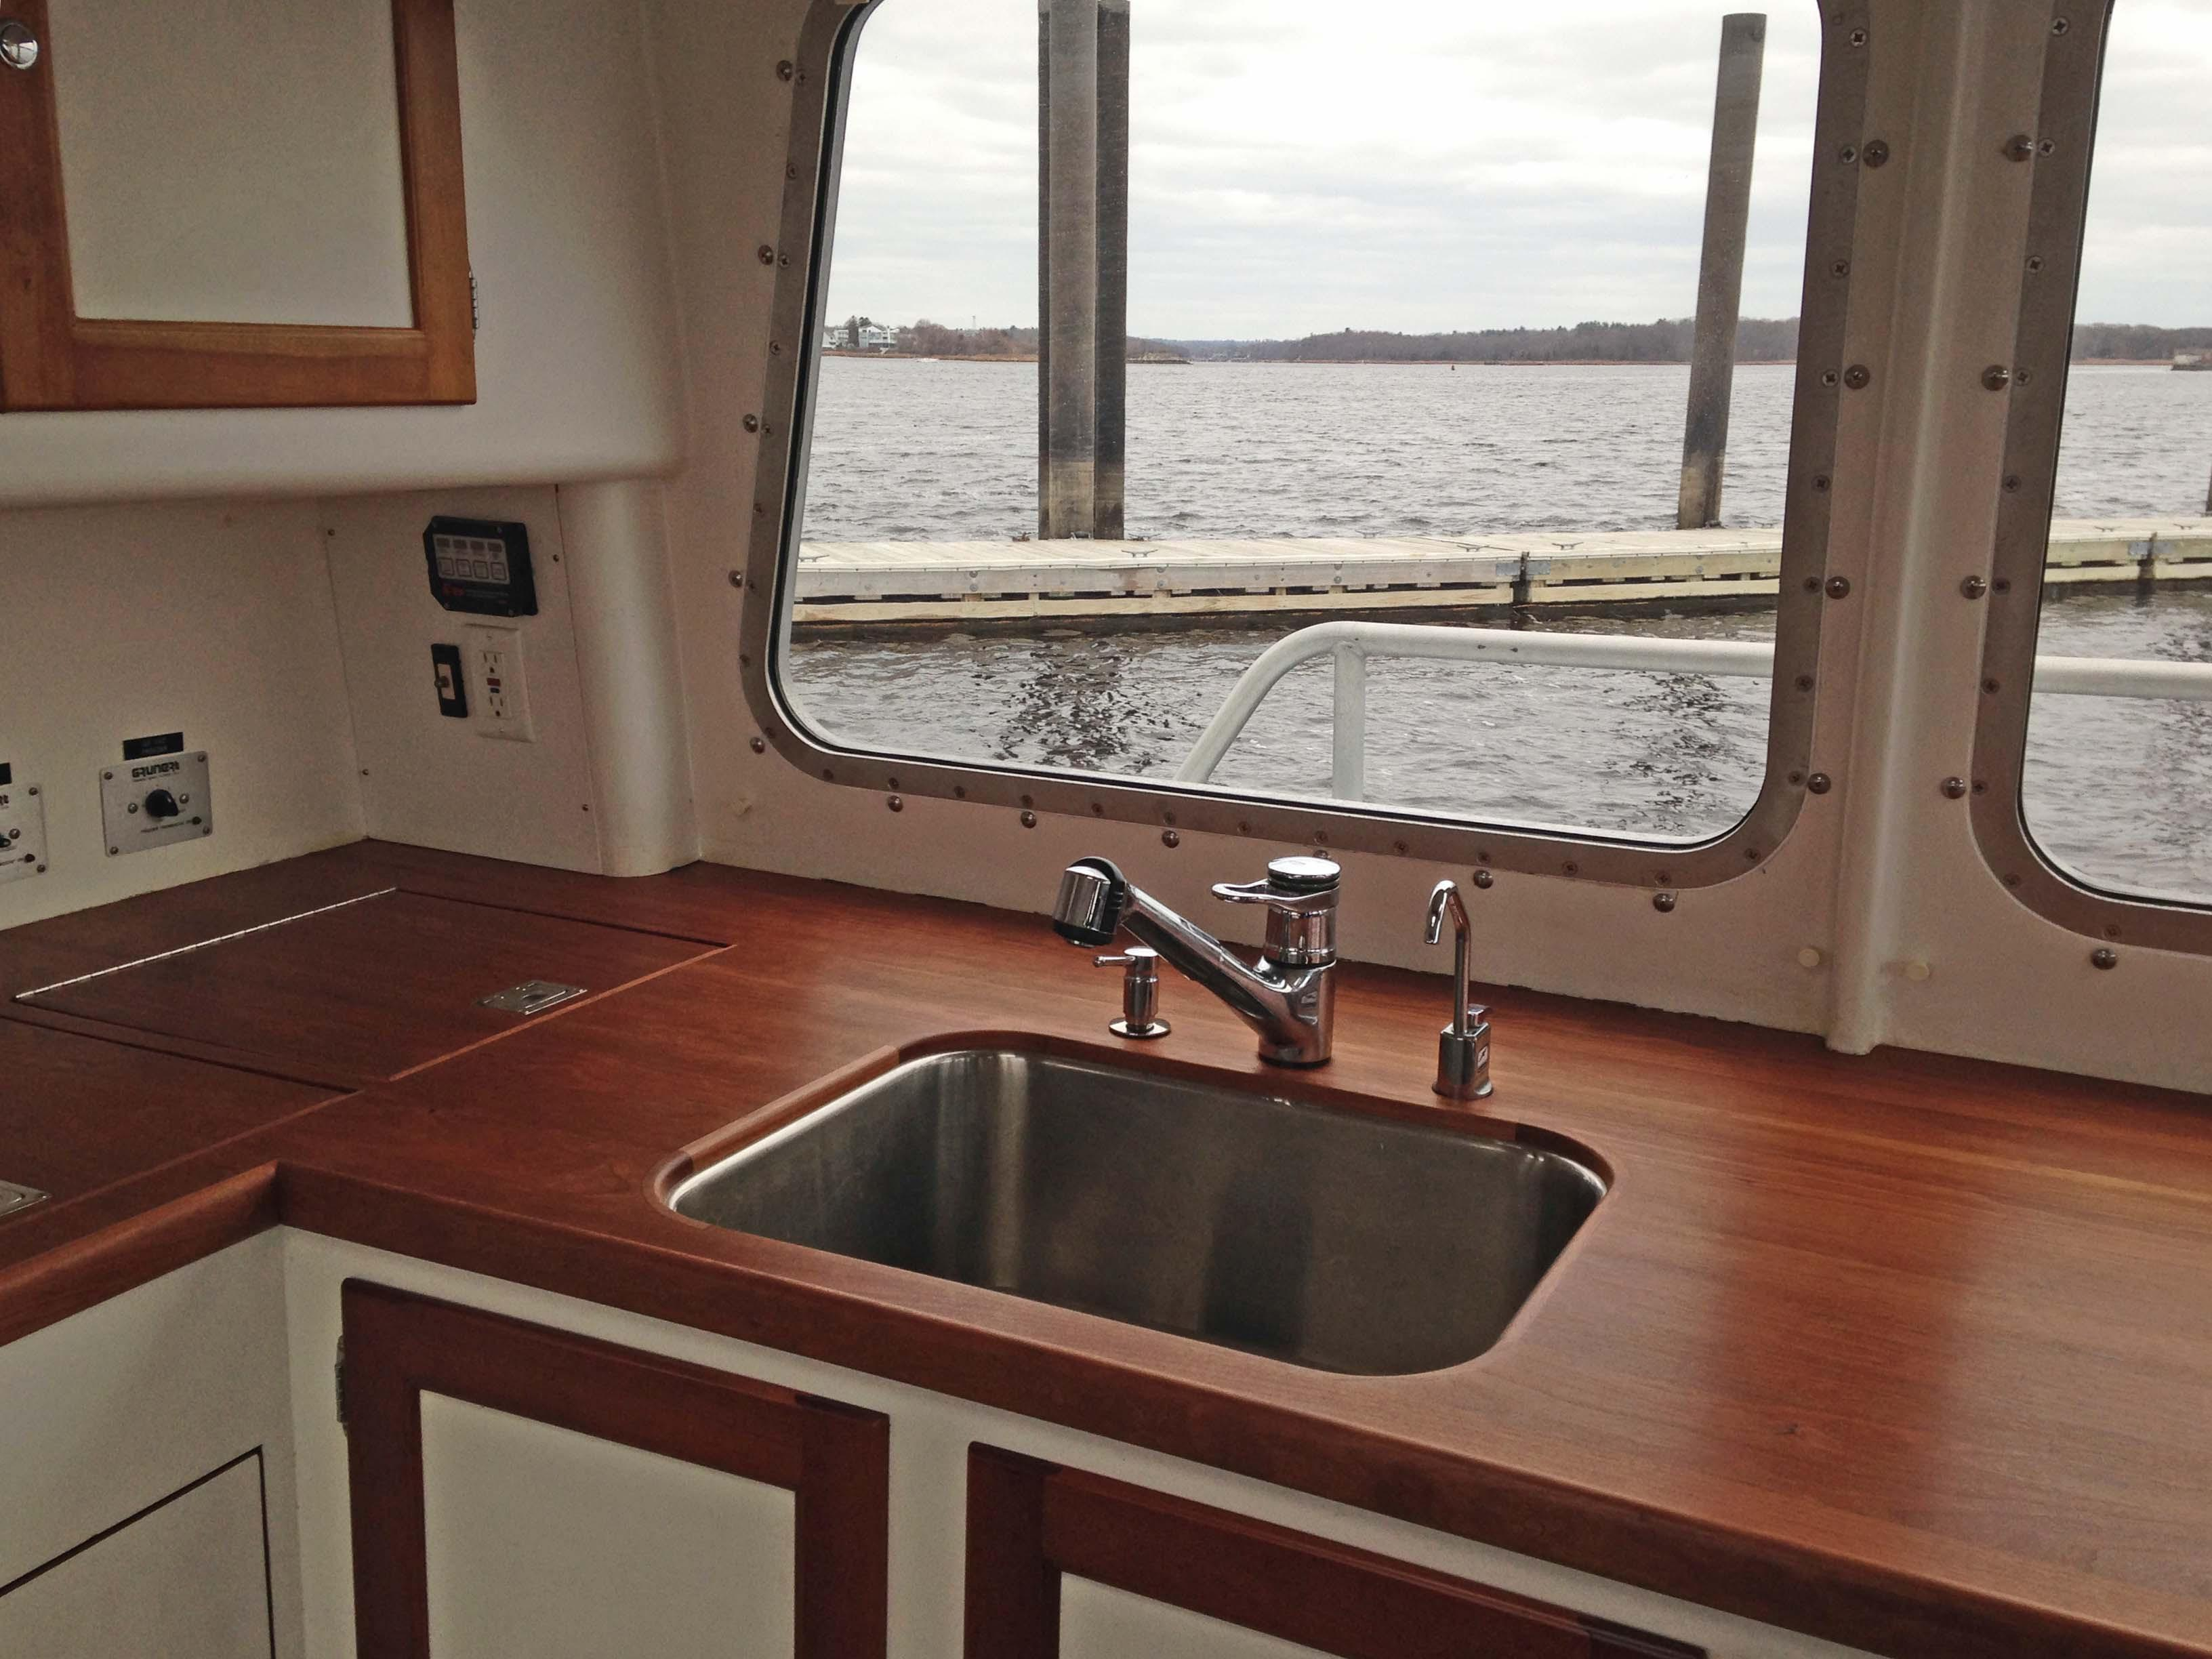 Galley Counter and Sink